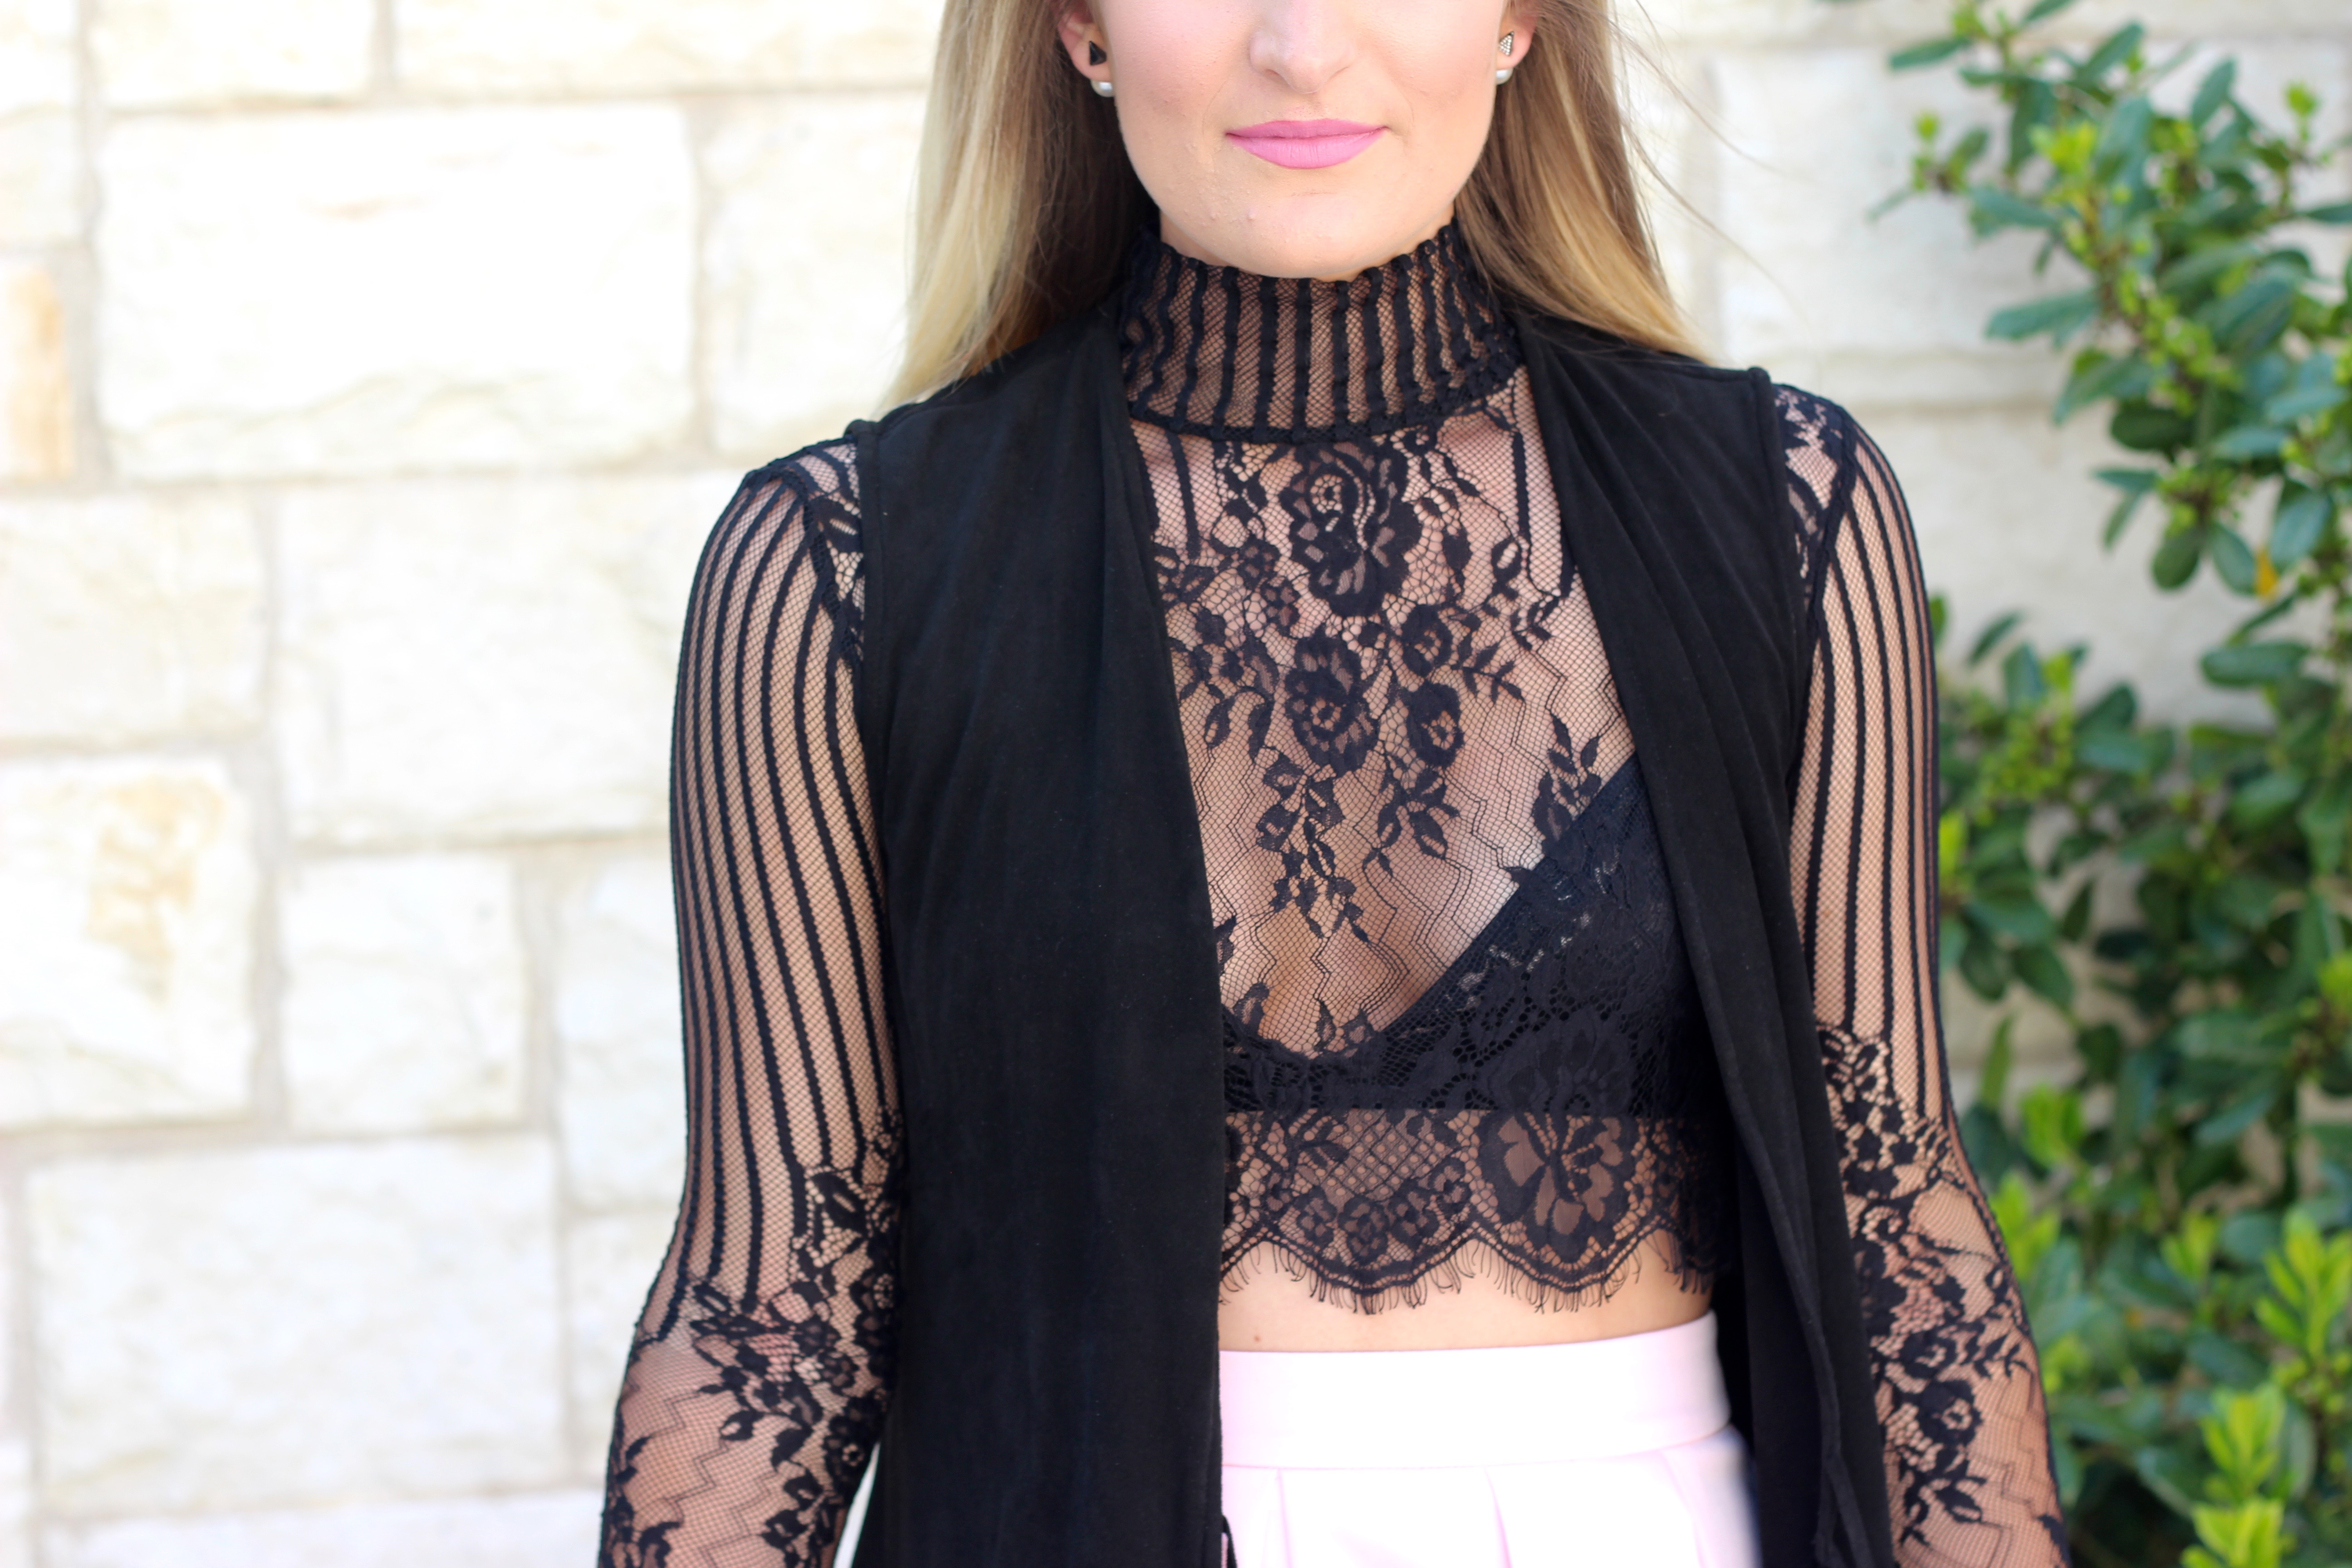 lace crop top detailing from asos - Lingerie Outfit By Day by popular Texas fashion blogger Audrey Madison Stowe